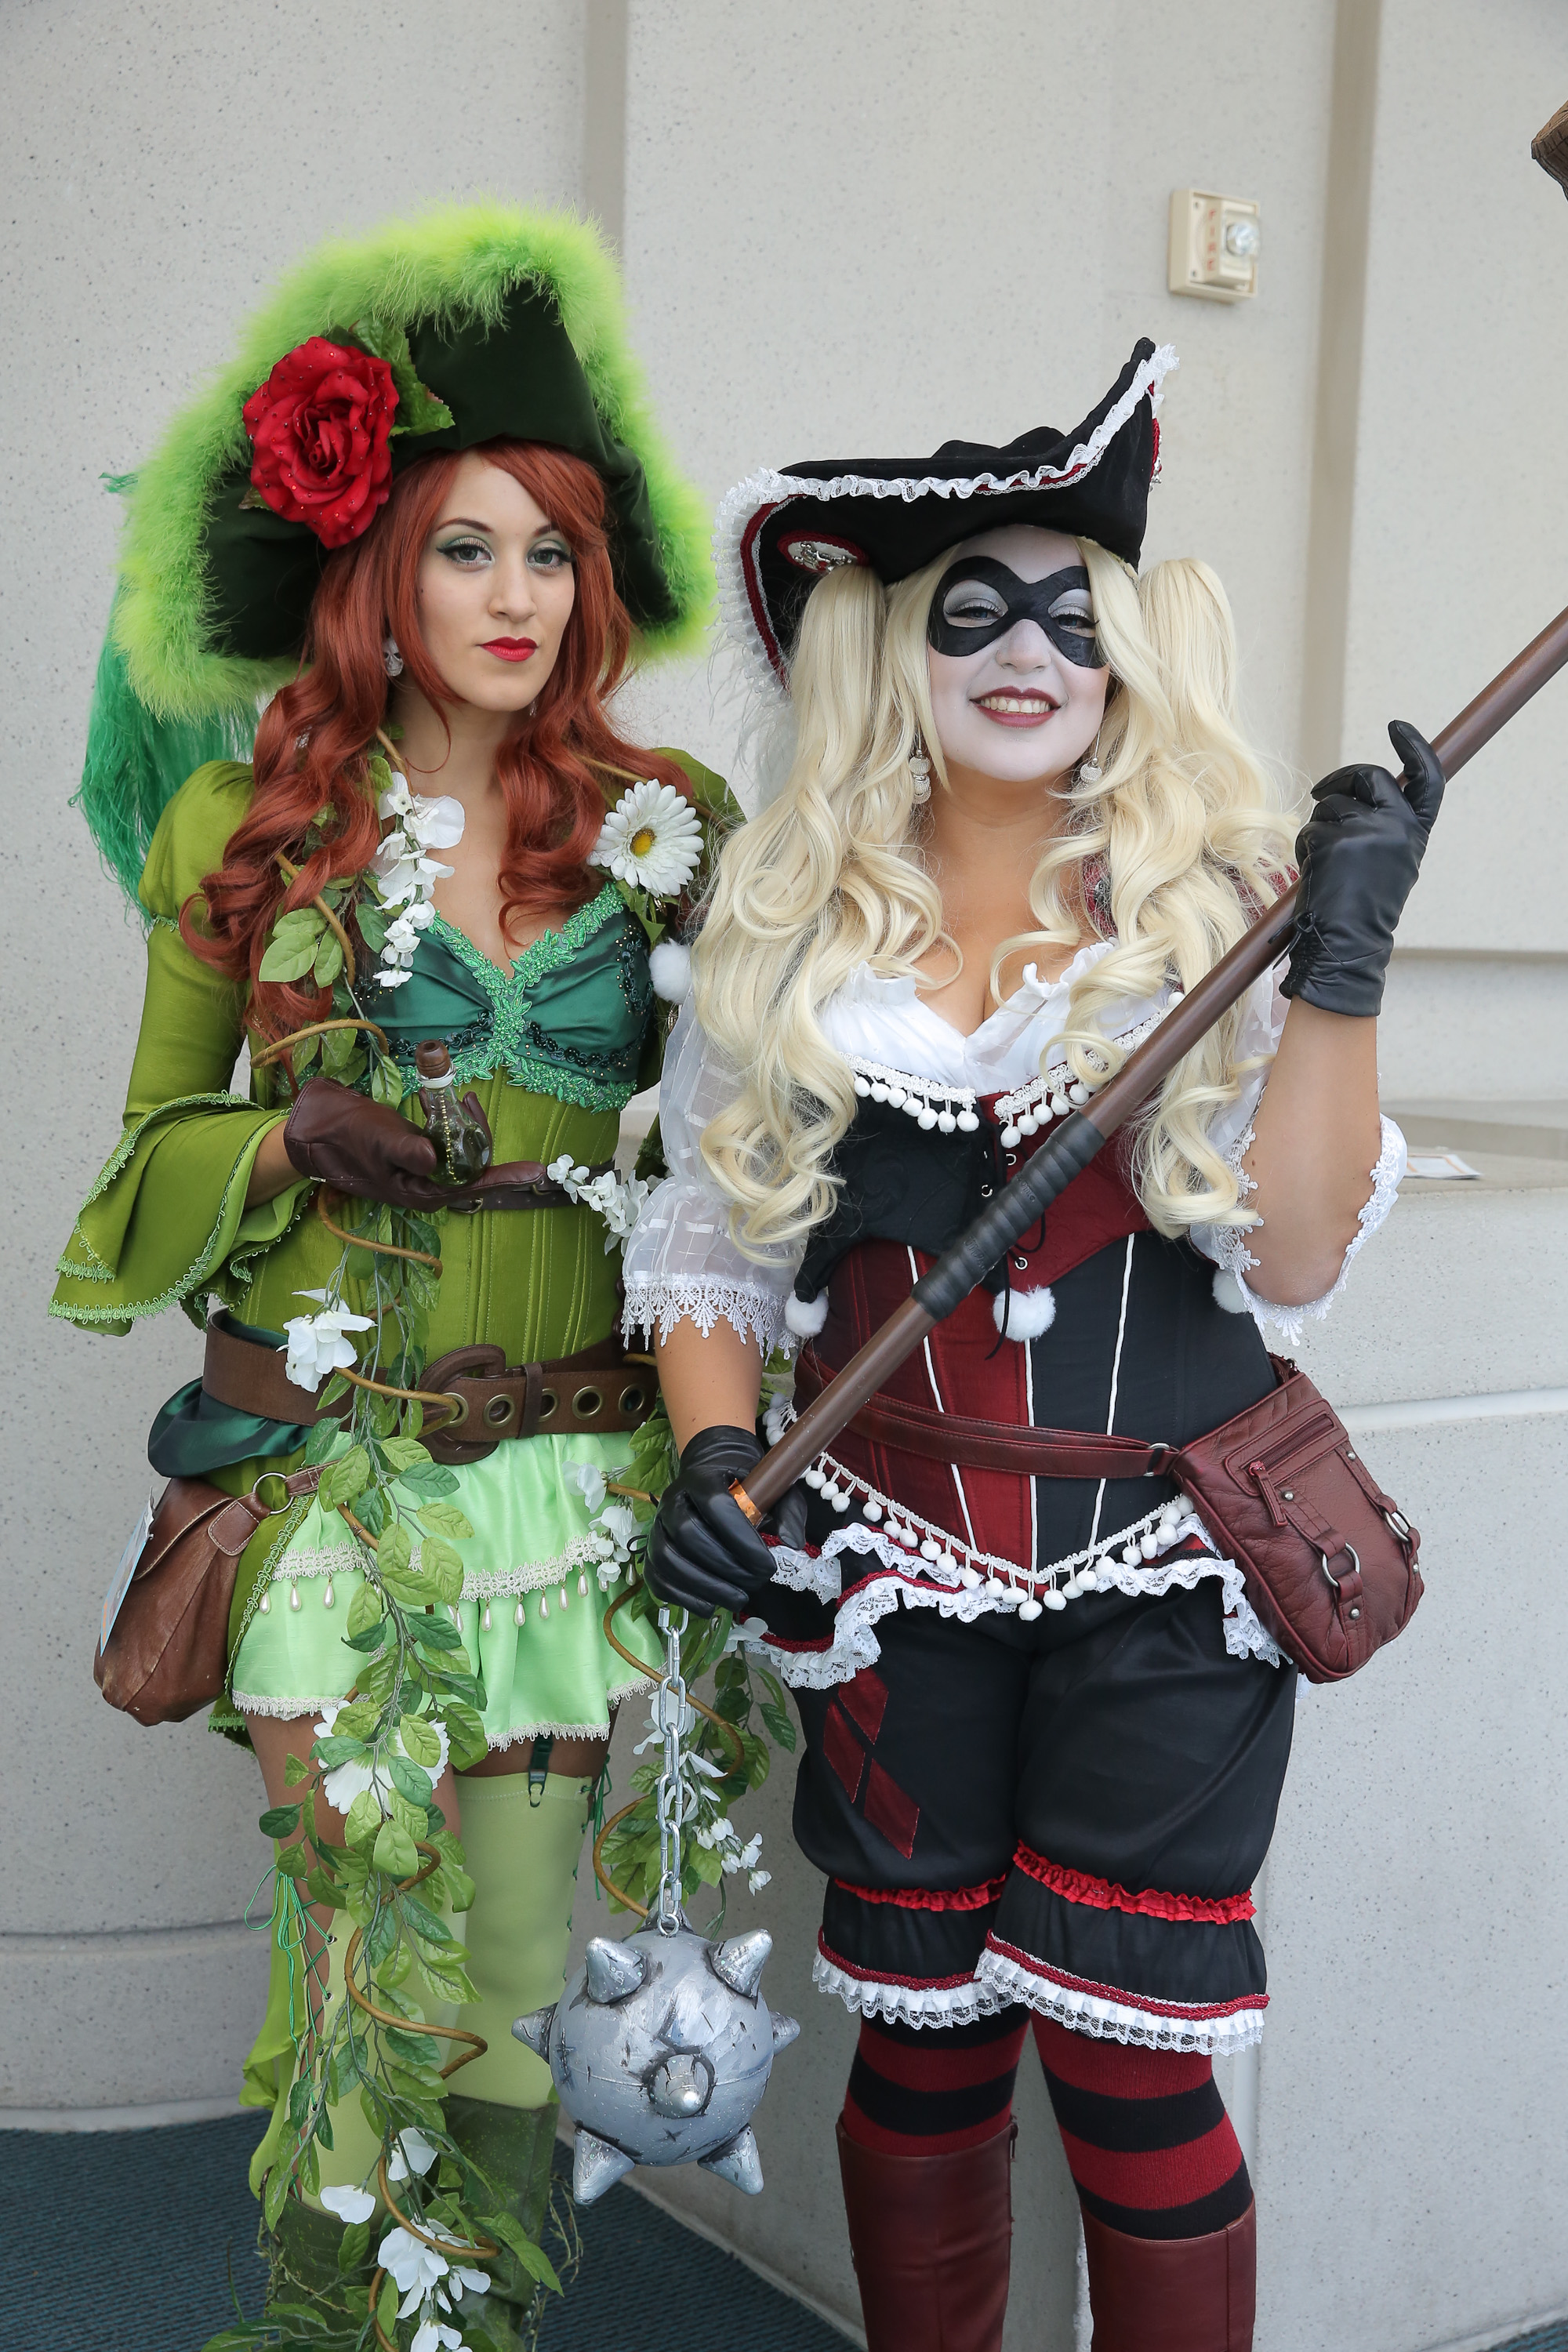 Costumed fans attend Comic-Con International on July 26, 2014 in San Diego.